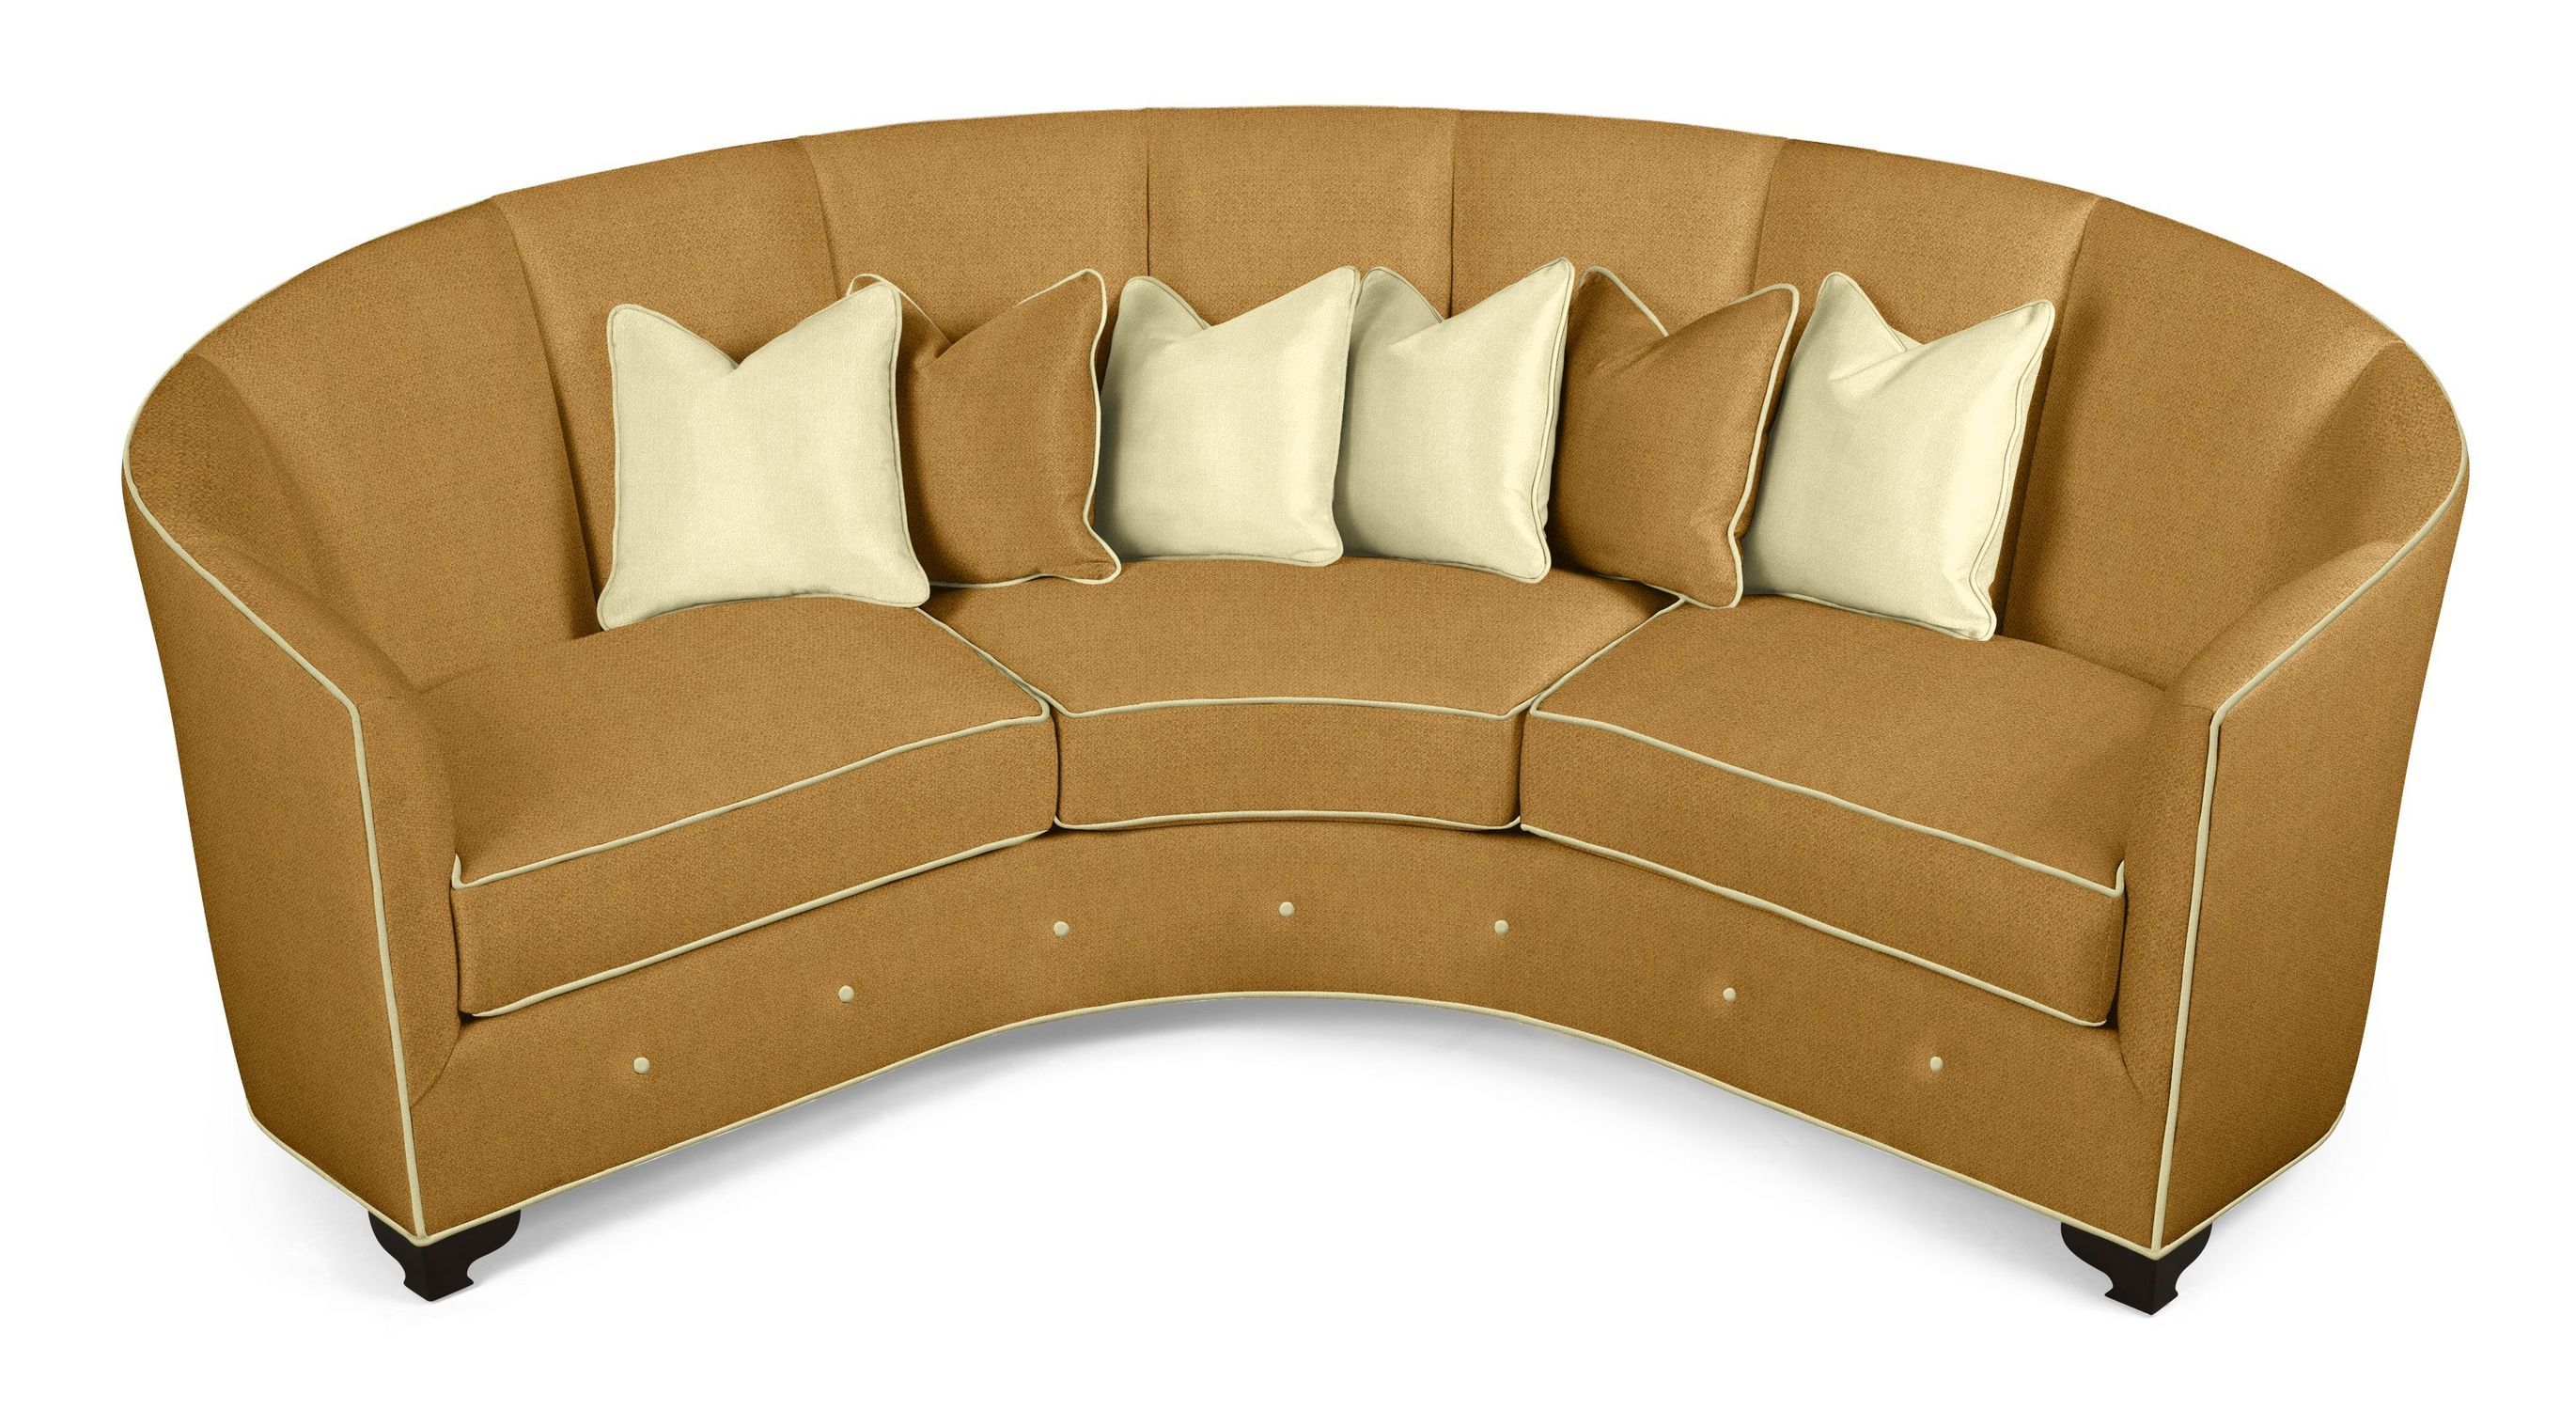 fascinating 7 seat sectional sofa decoration-Latest 7 Seat Sectional sofa Image